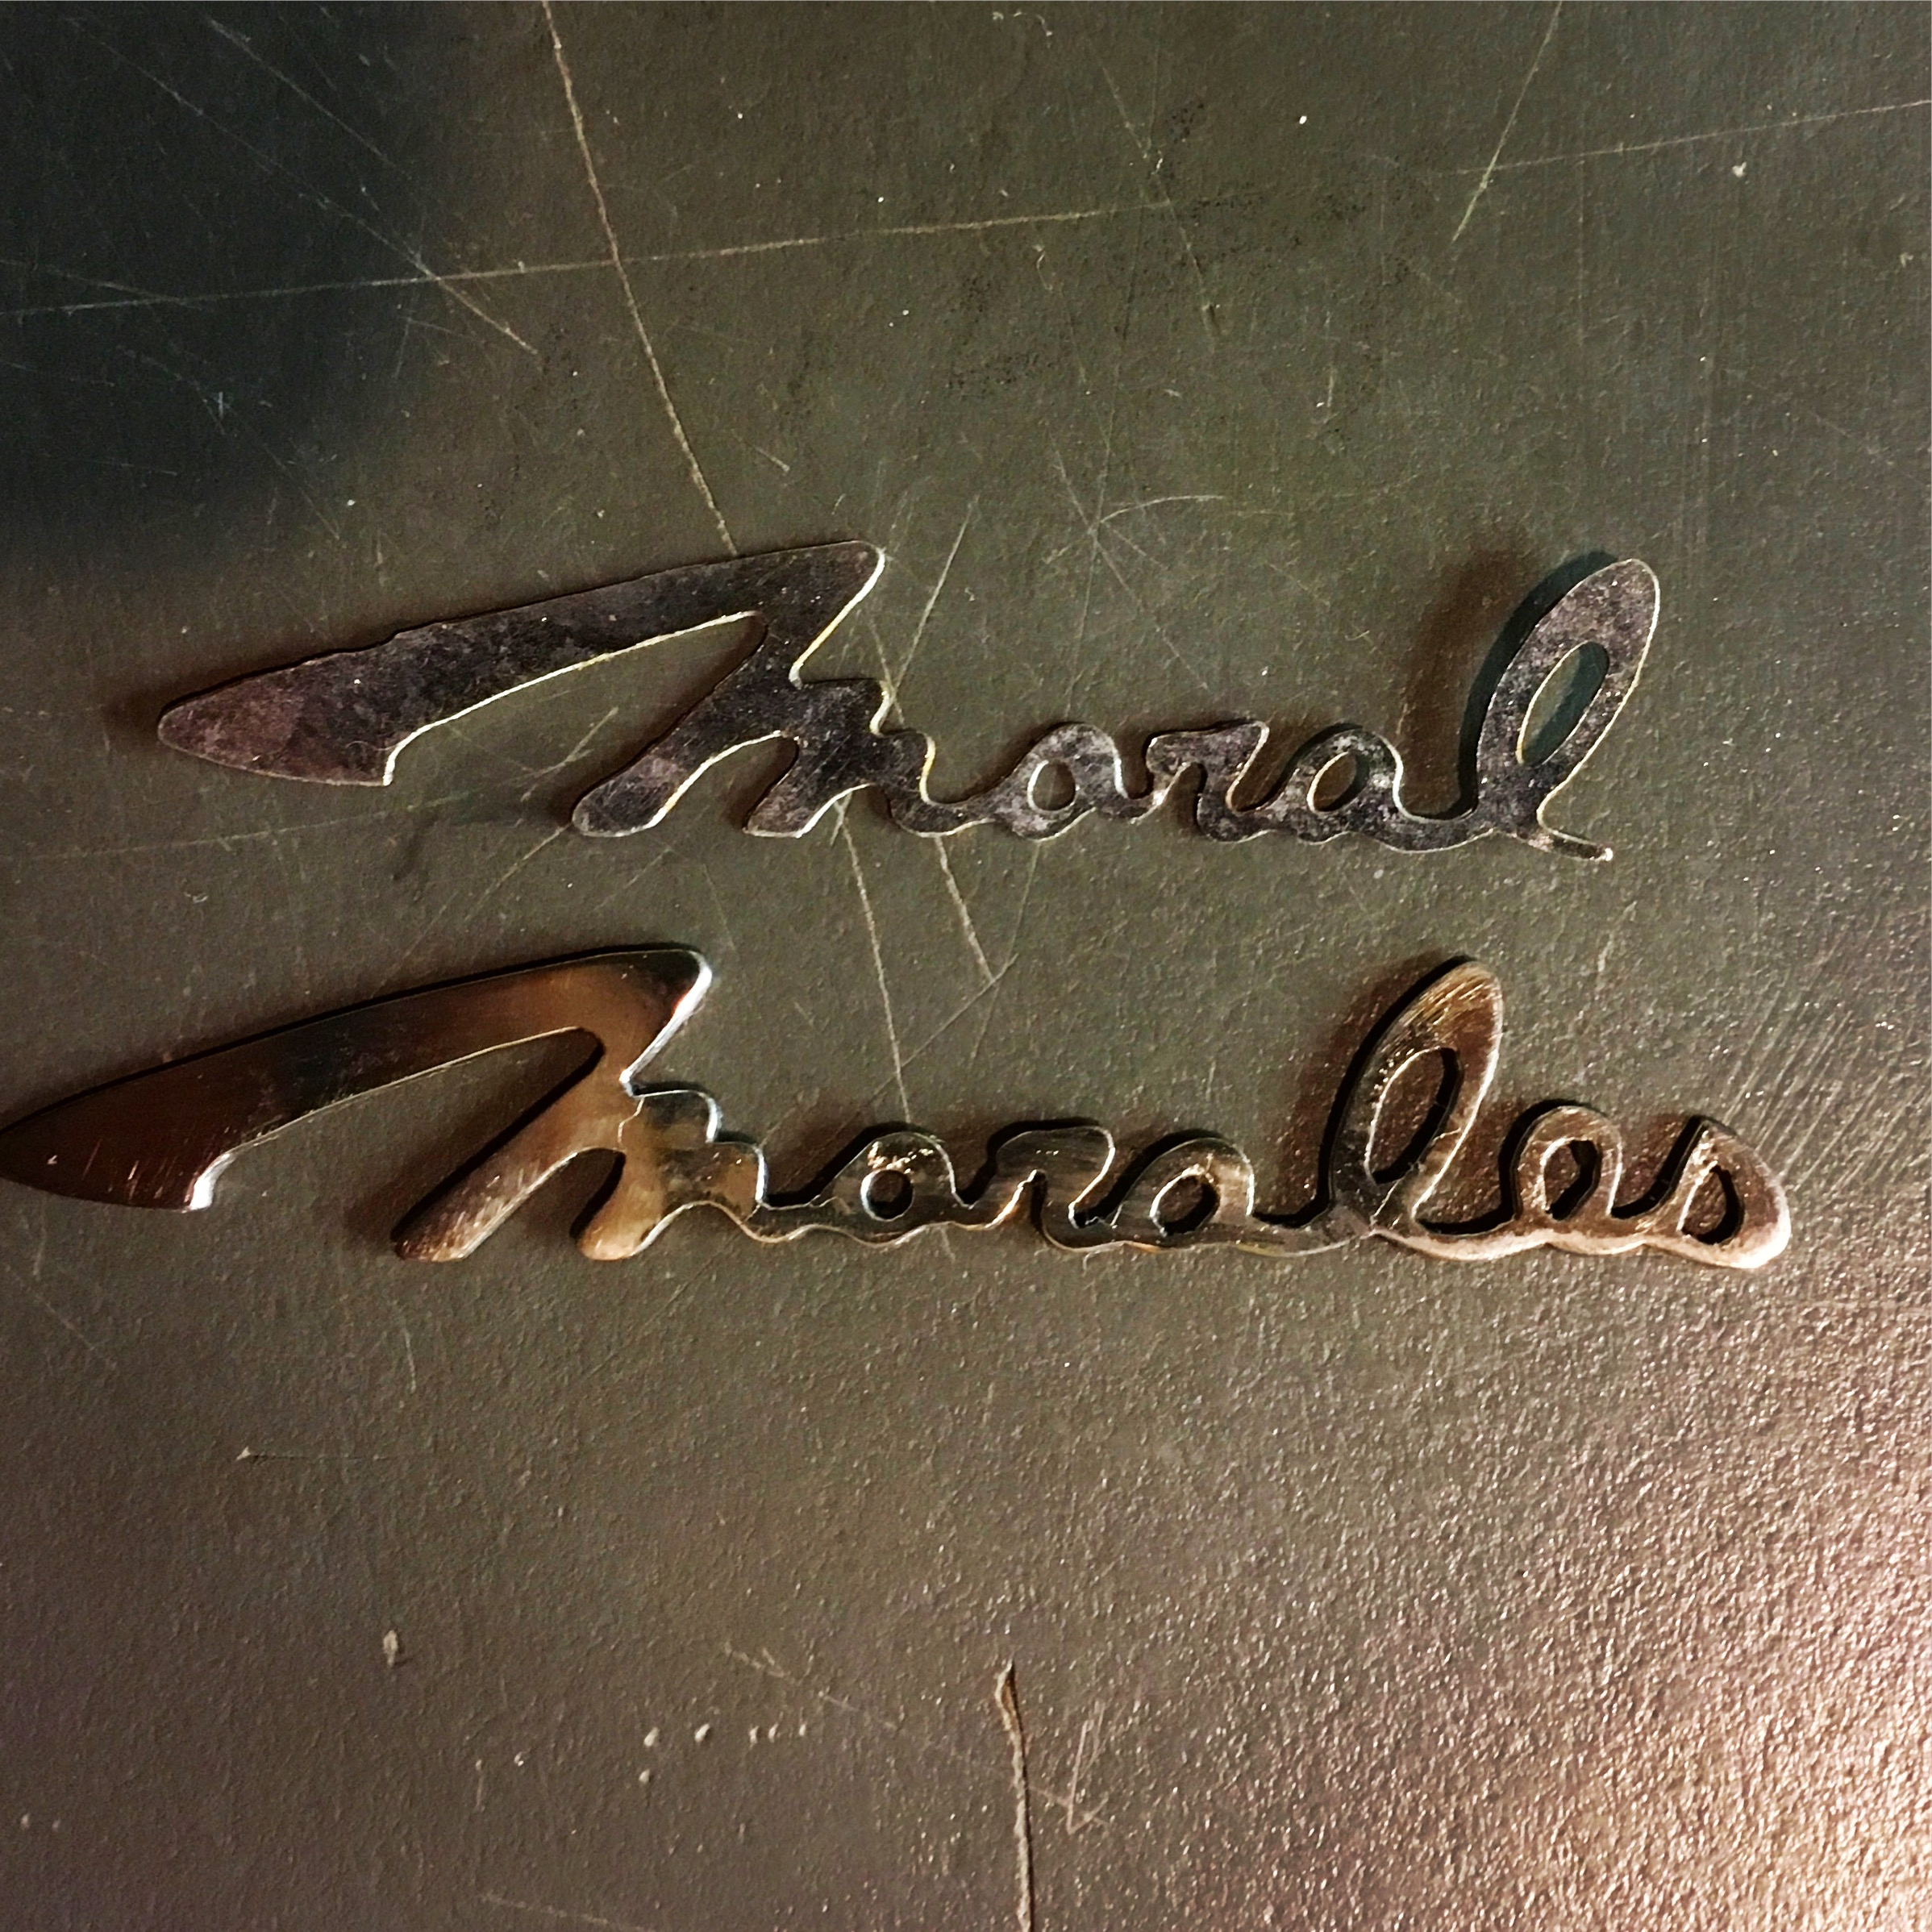 Non motorcycle stuff: This is a German silver script made for a Morales guitar. The guitars were a knock-off of the Mosrite Ventures guitar named after a popular wrestler in 1960's Japan. I was asked to make the lower script to replace the missing two letters.